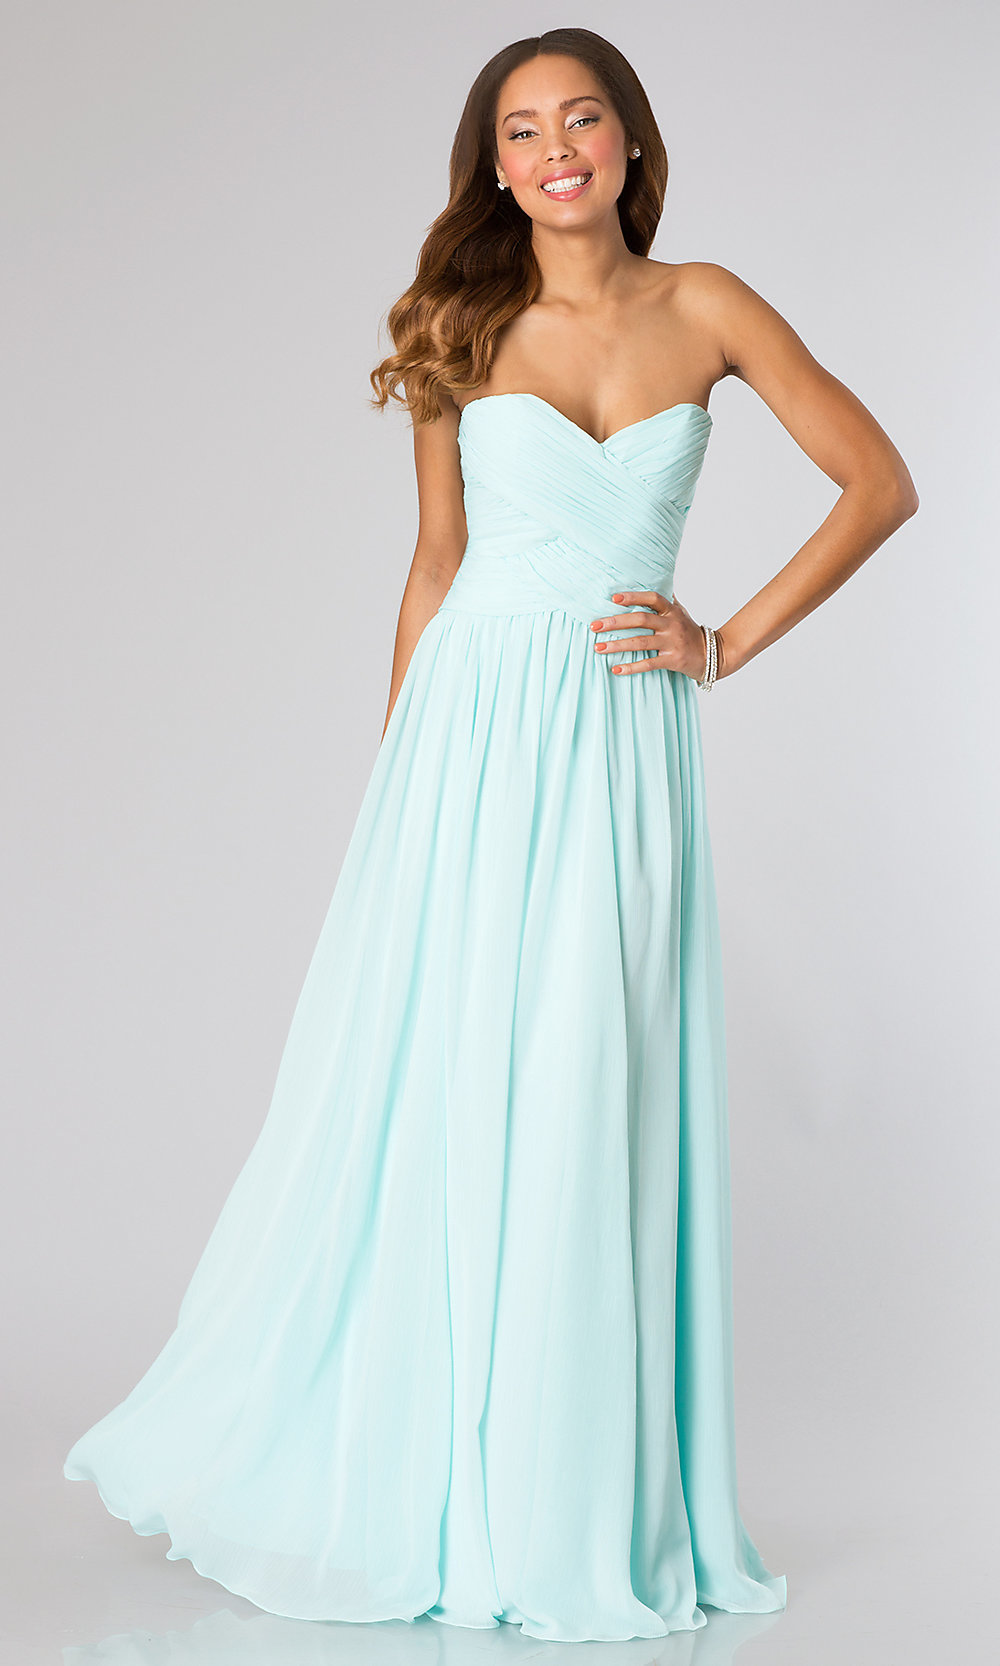 Mori Lee Prom Dresses, Mori Lee Ball Gowns - p1 (by 32 - low price)